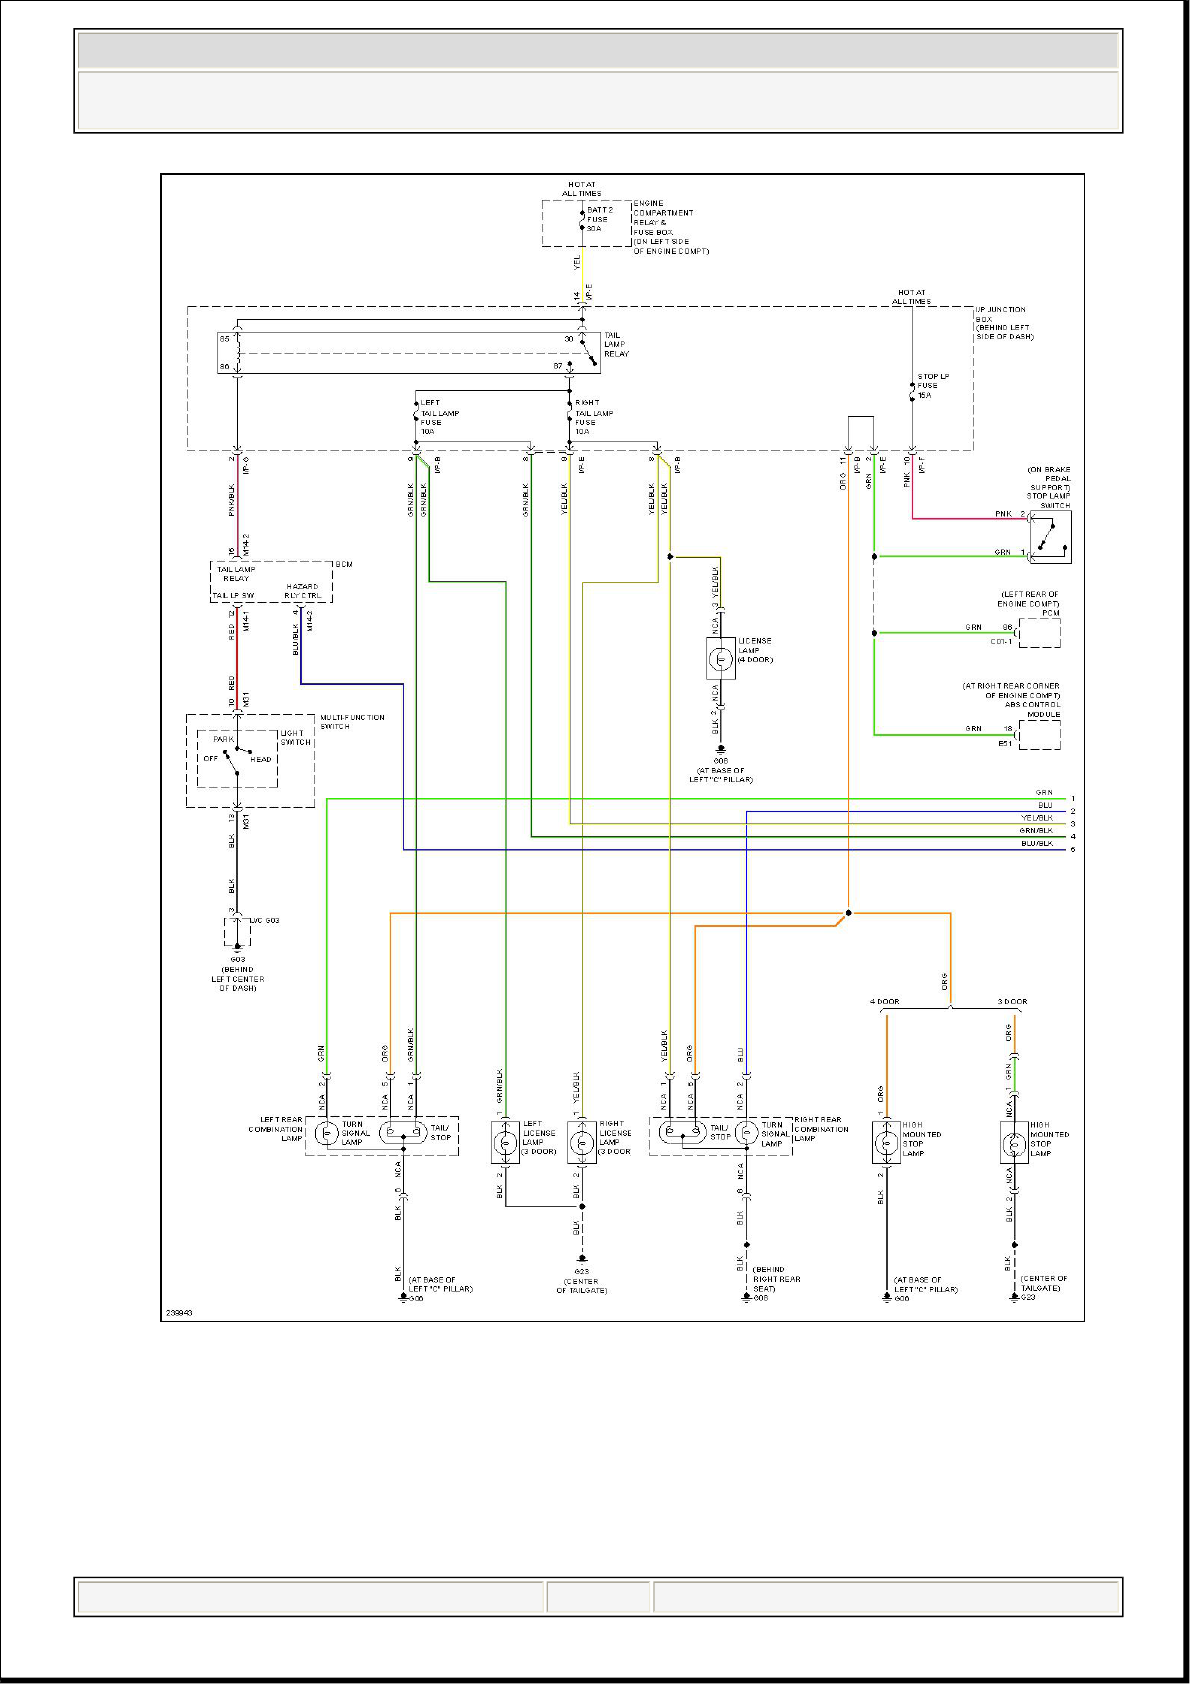 Colorful hyundai accent wiring diagram pdf elaboration electrical enchanting hyundai accent wiring diagram pdf adornment electrical swarovskicordoba Image collections